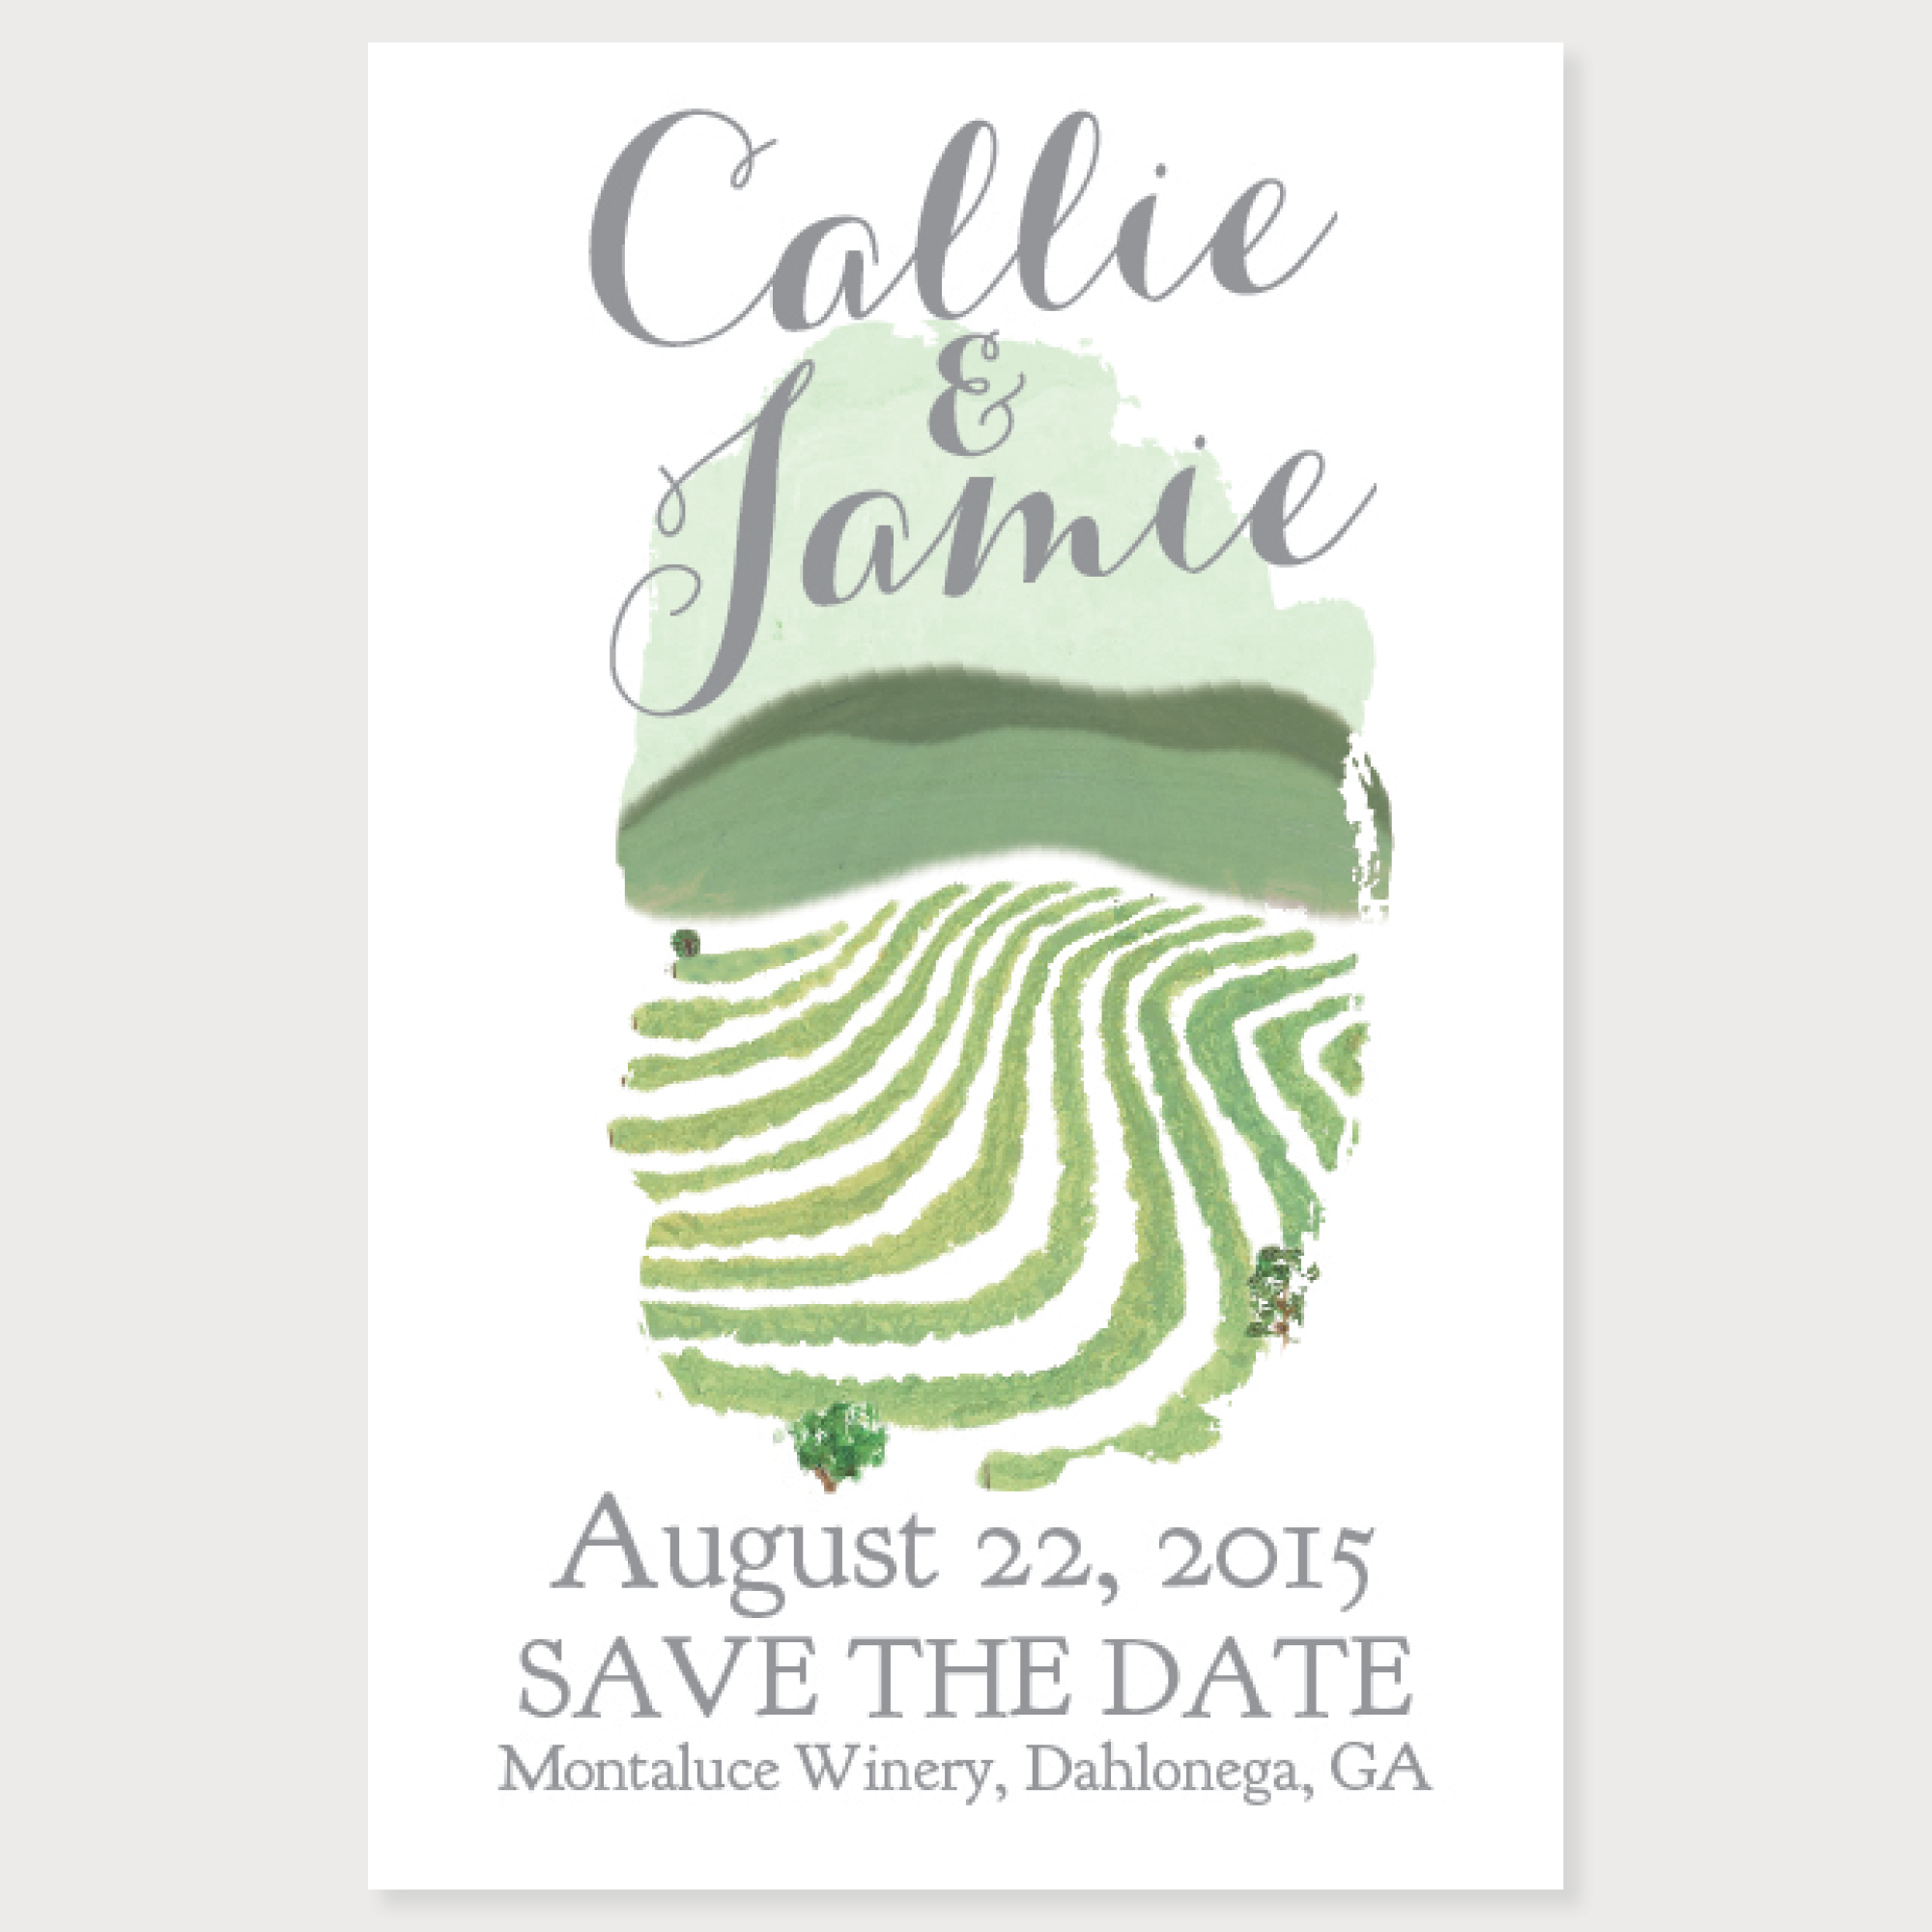 Callie&Jamie_Save-the-date.jpg